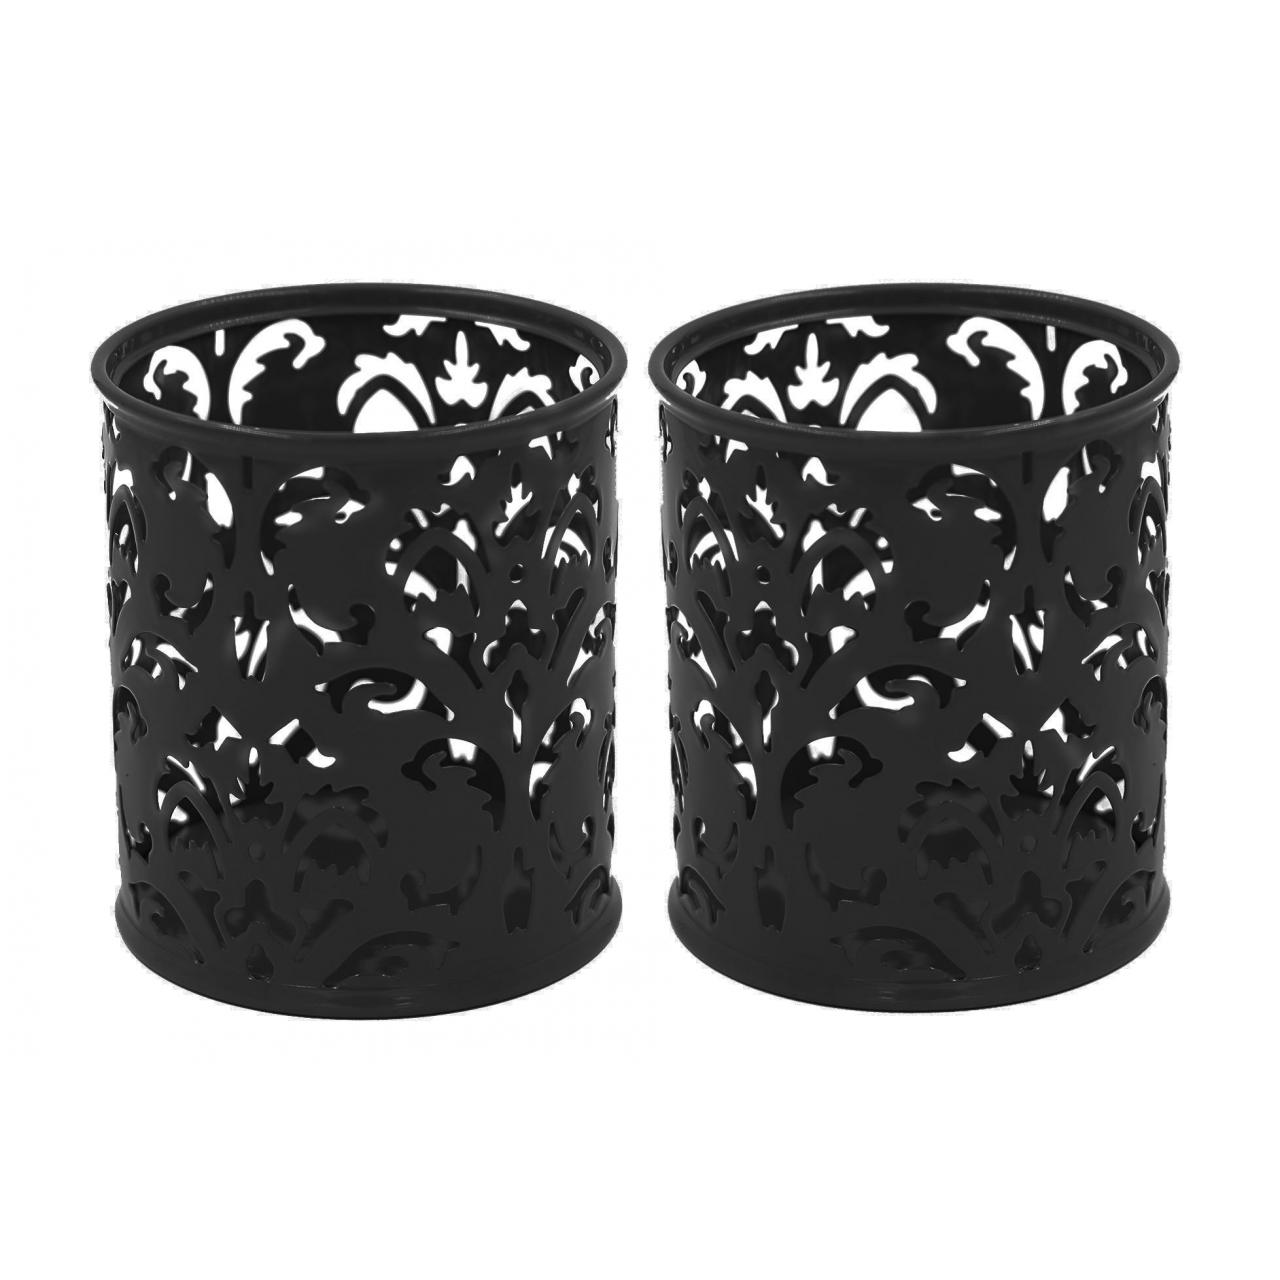 Buy cheap EasyPAG 2 Pcs 3-1/4 inch Dia x 3-3/4 inch High Round Floral Pencil Holder from wholesalers